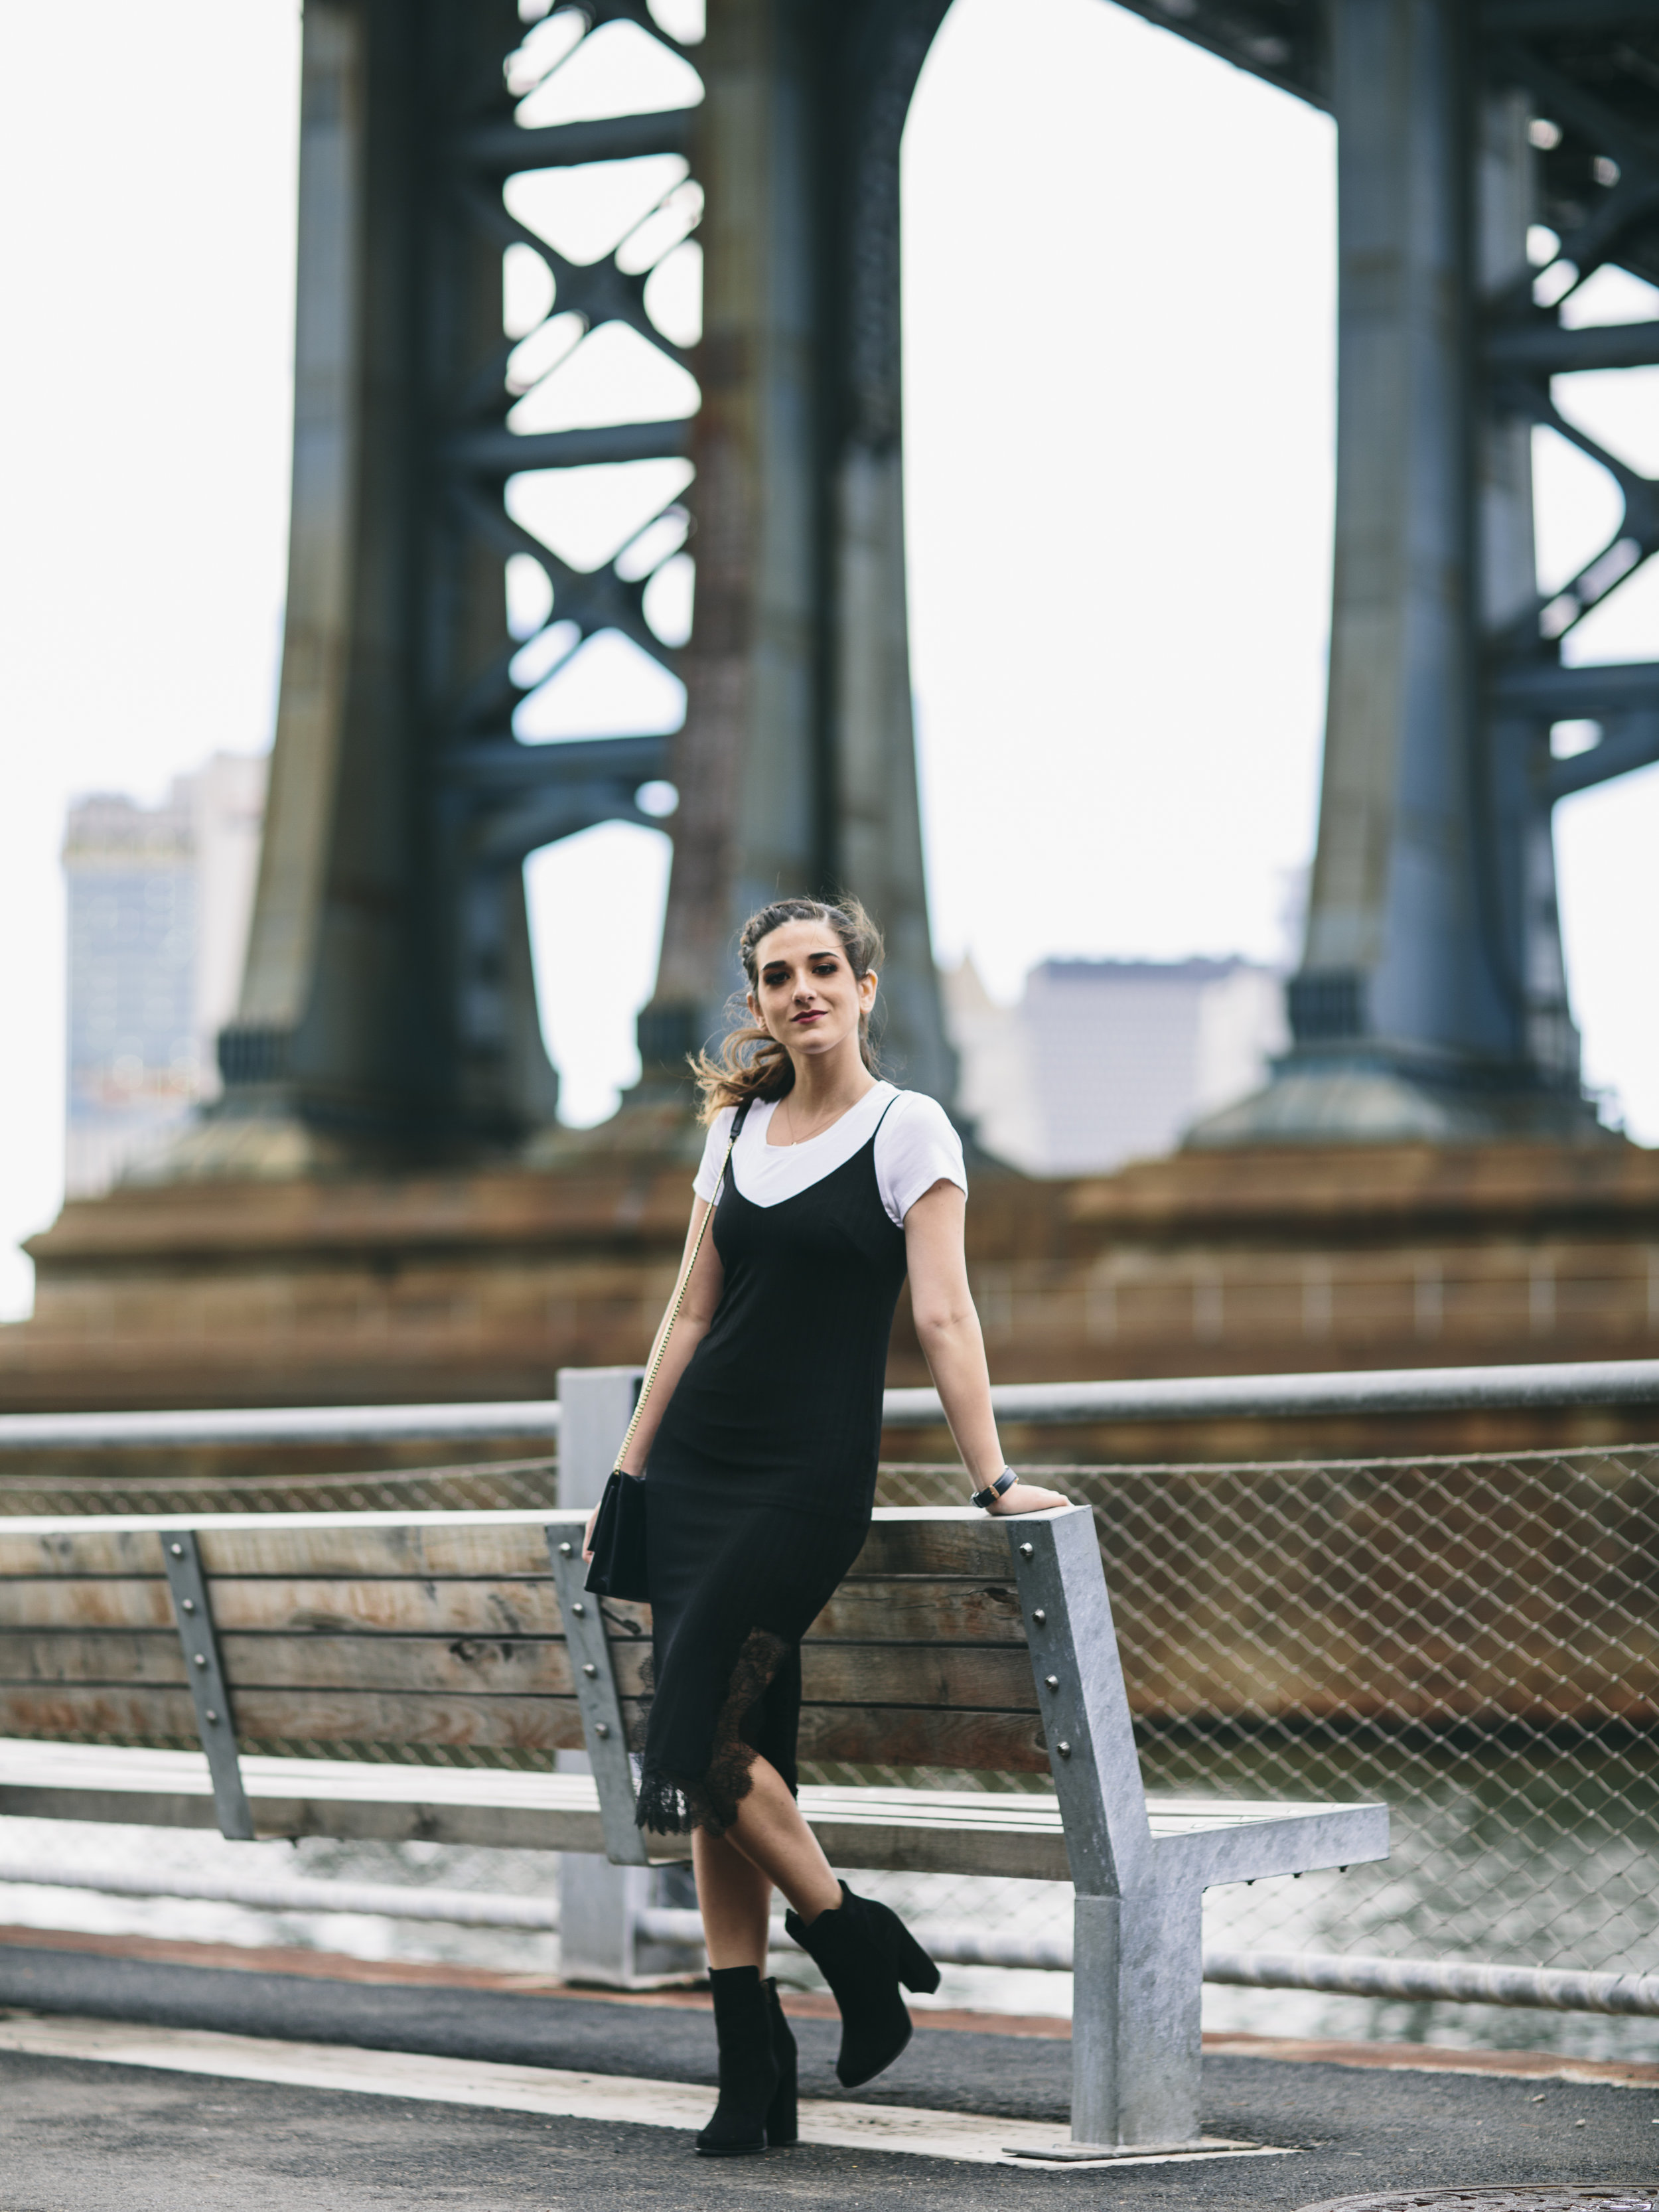 Black Lace Slip Dress Over White Tee Louboutins & Love Fashion Blog Esther Santer NYC Street Style Blogger Outfit OOTD Trendy Booties M4D3 Online Shopping Girl Women Fall Look Ivanka Trump Cocktail Bag Watch Wear Ponytail Hair Inspo Edgy Fashionista.jpg